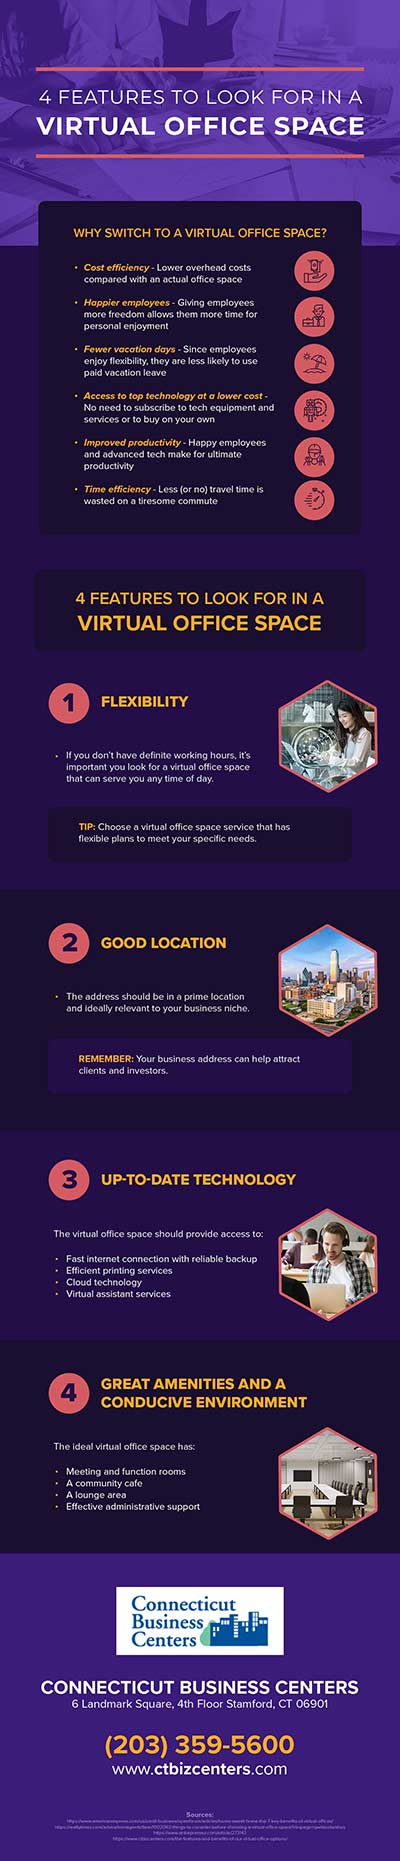 [INFOGRAPHIC] 4 Features to Look for in a Virtual Office Space